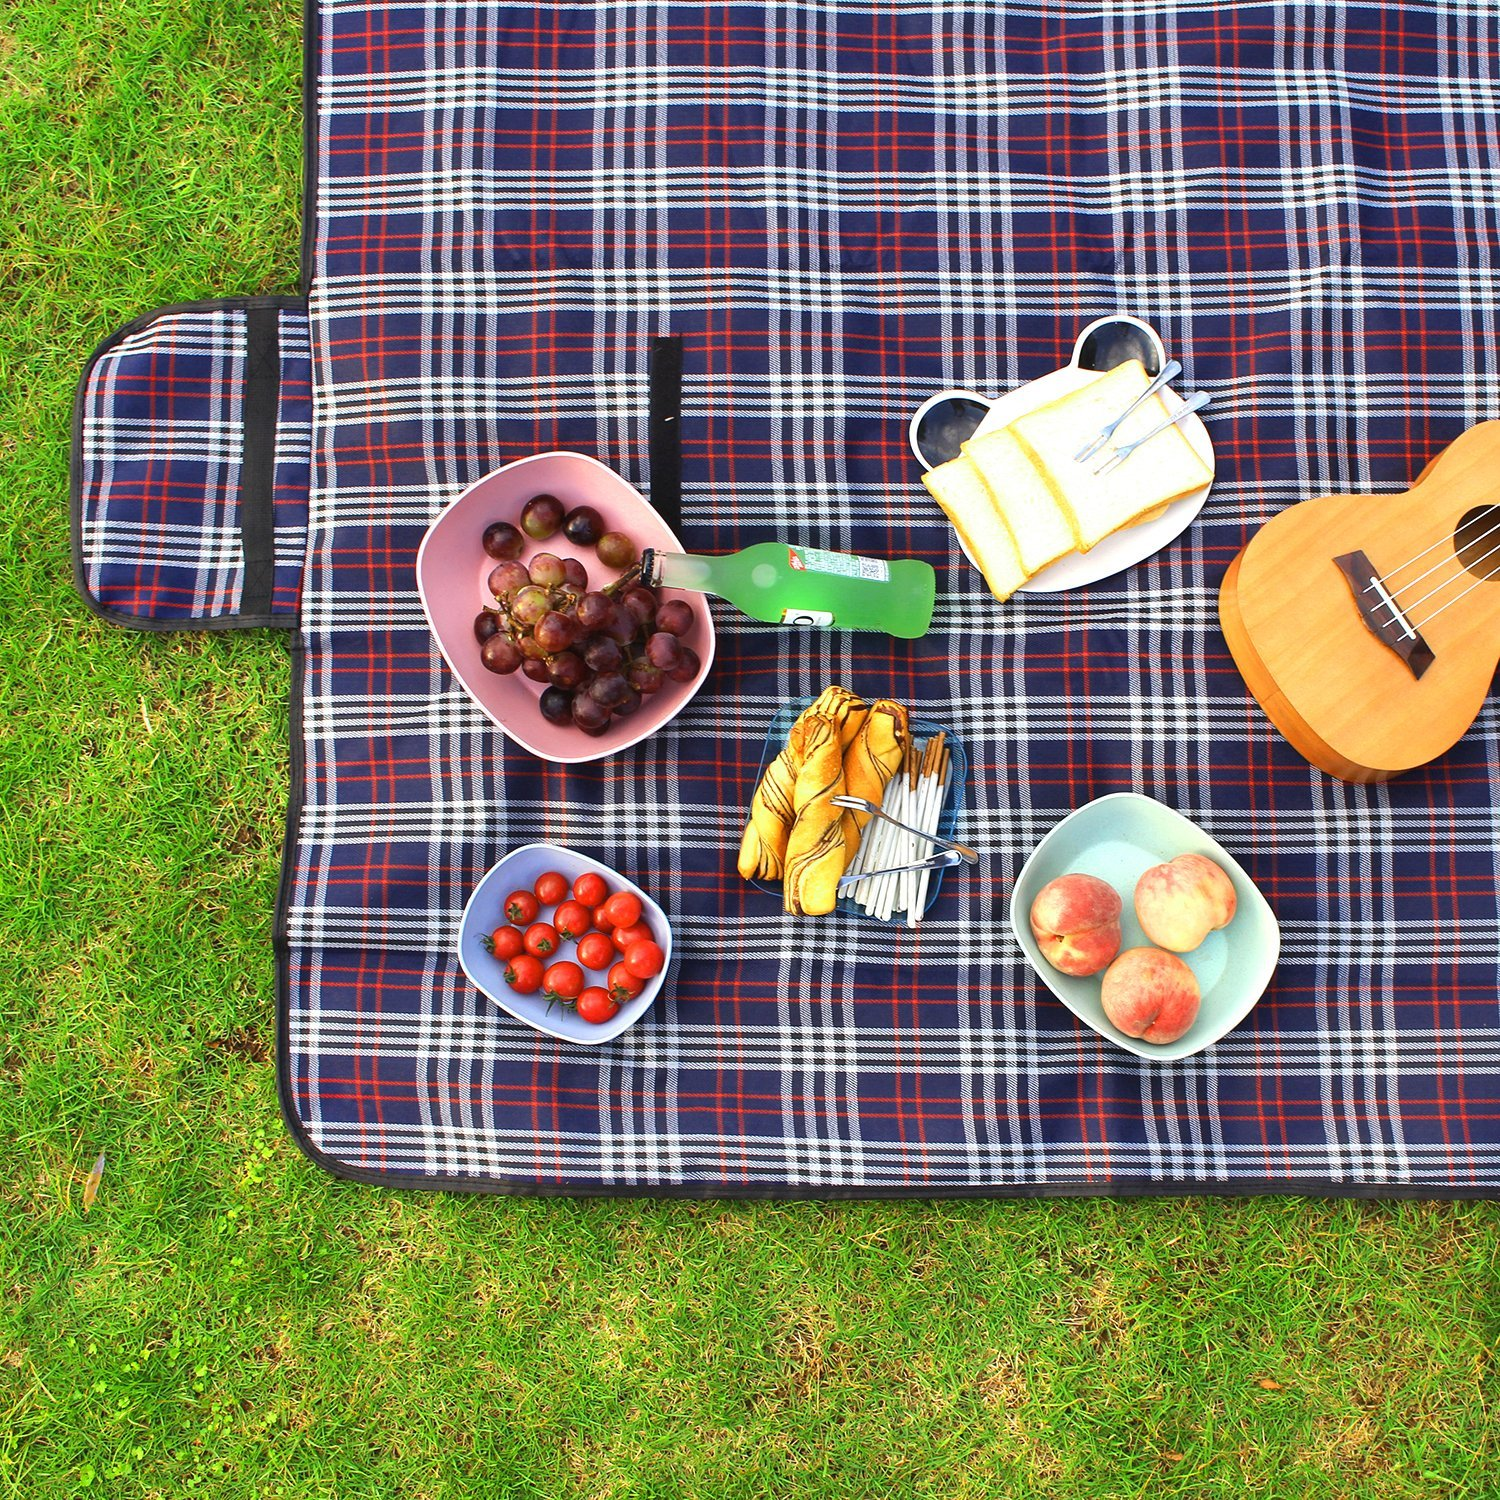 Outdoor Waterproof Picnic Blanket Beach Camping Travel Mat